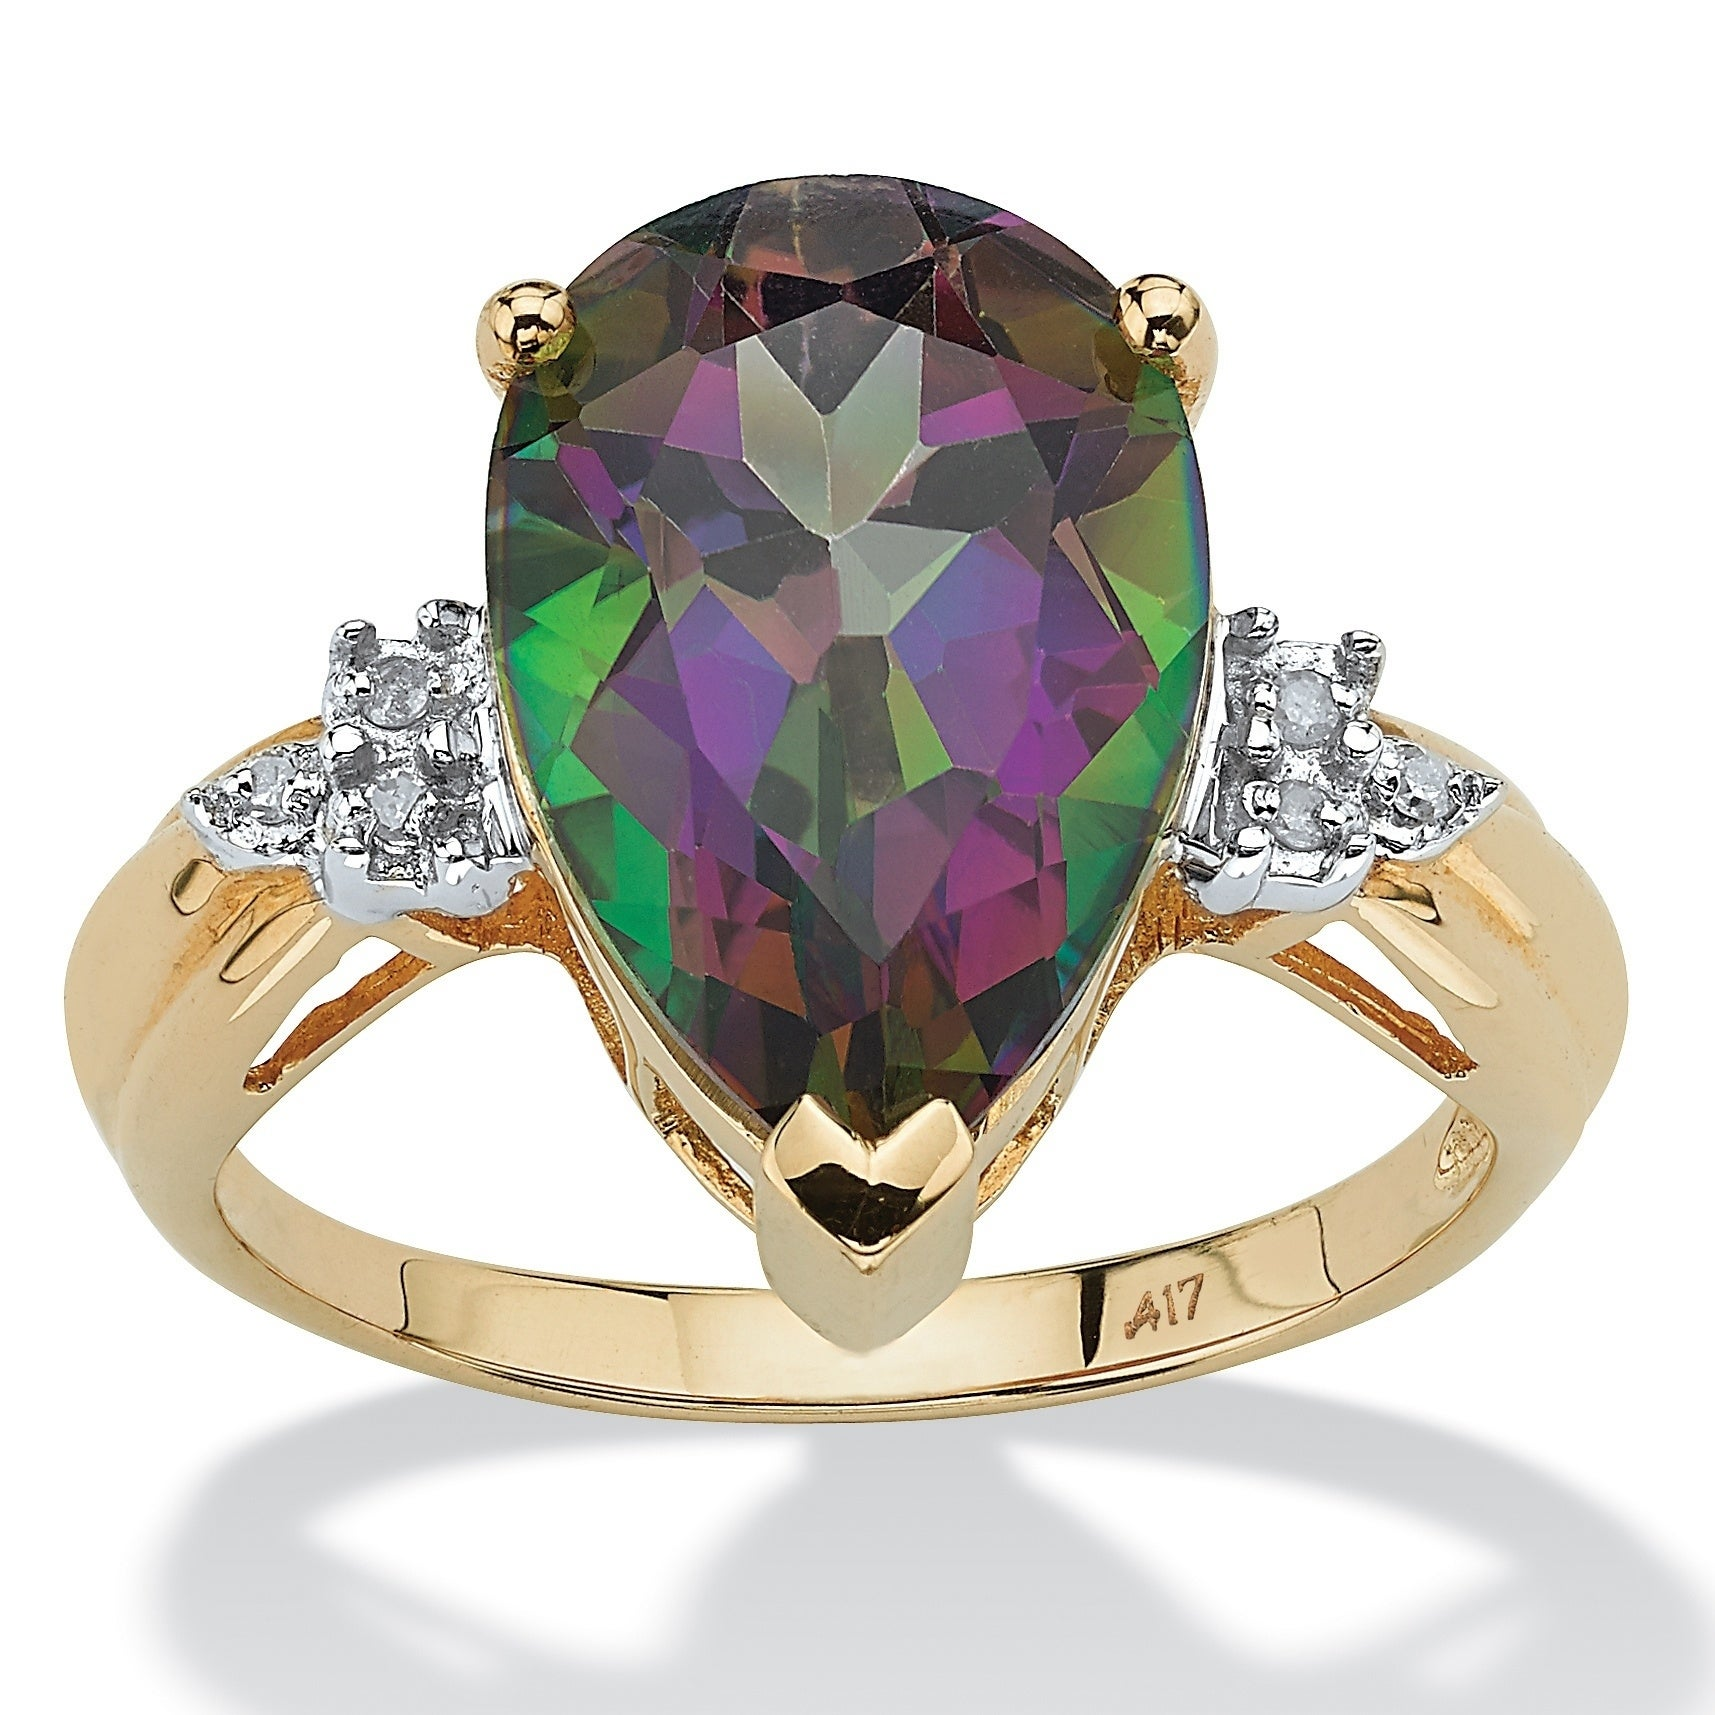 Palm Beach 8.50 TCW Genuine Pear-Cut Fire Topaz and Diamo...